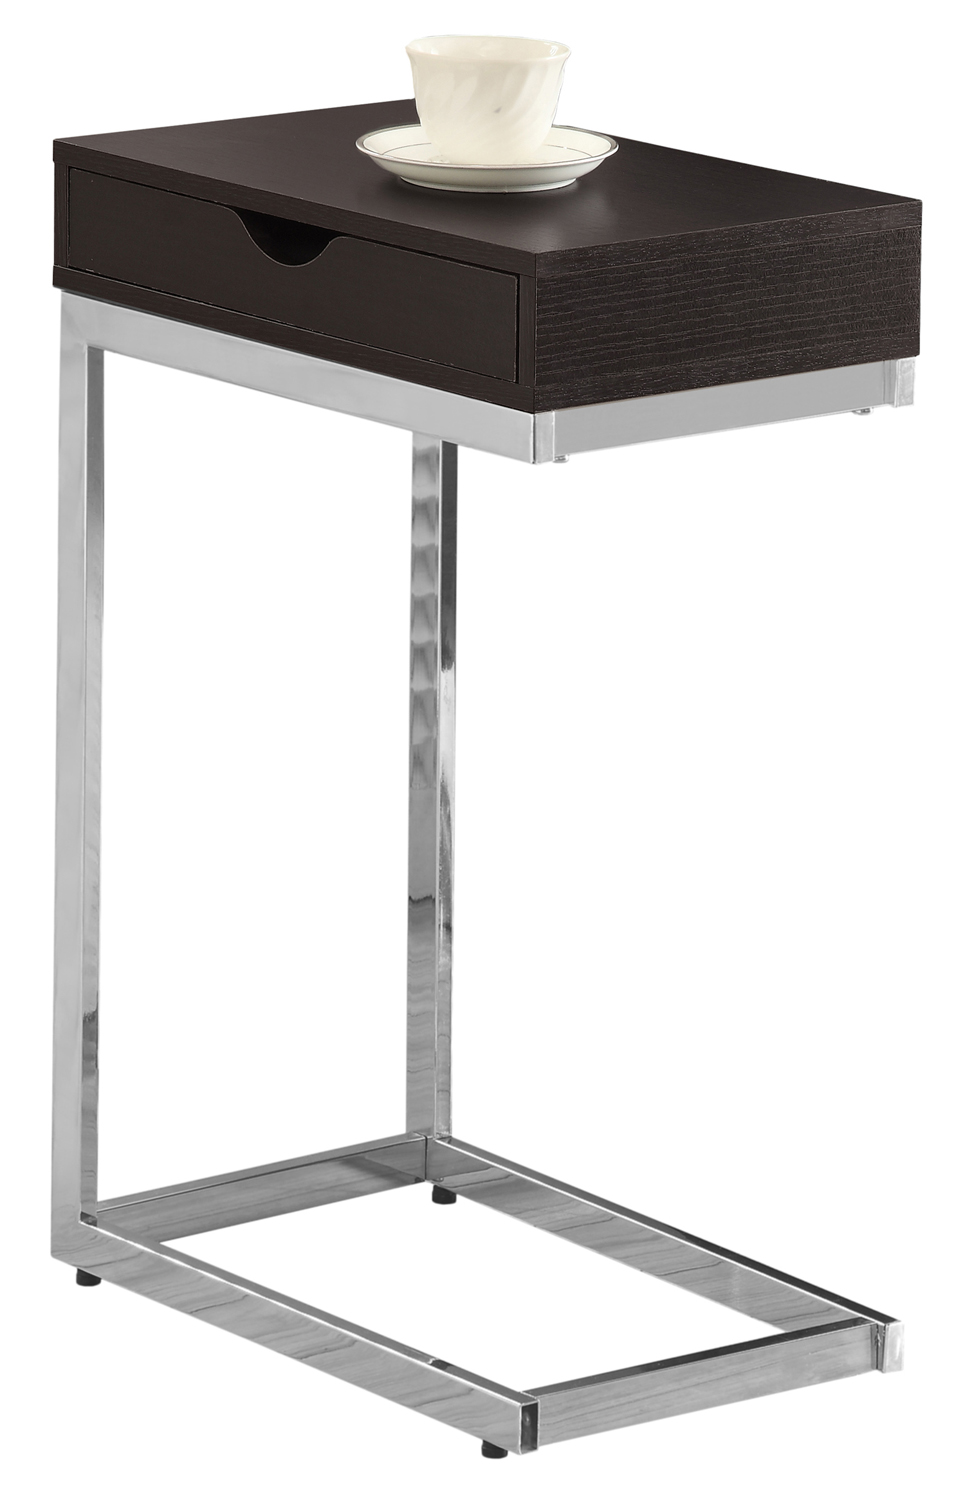 "16"" Accent Table with Storage Drawer, Chrome Metal and Cappuccino"